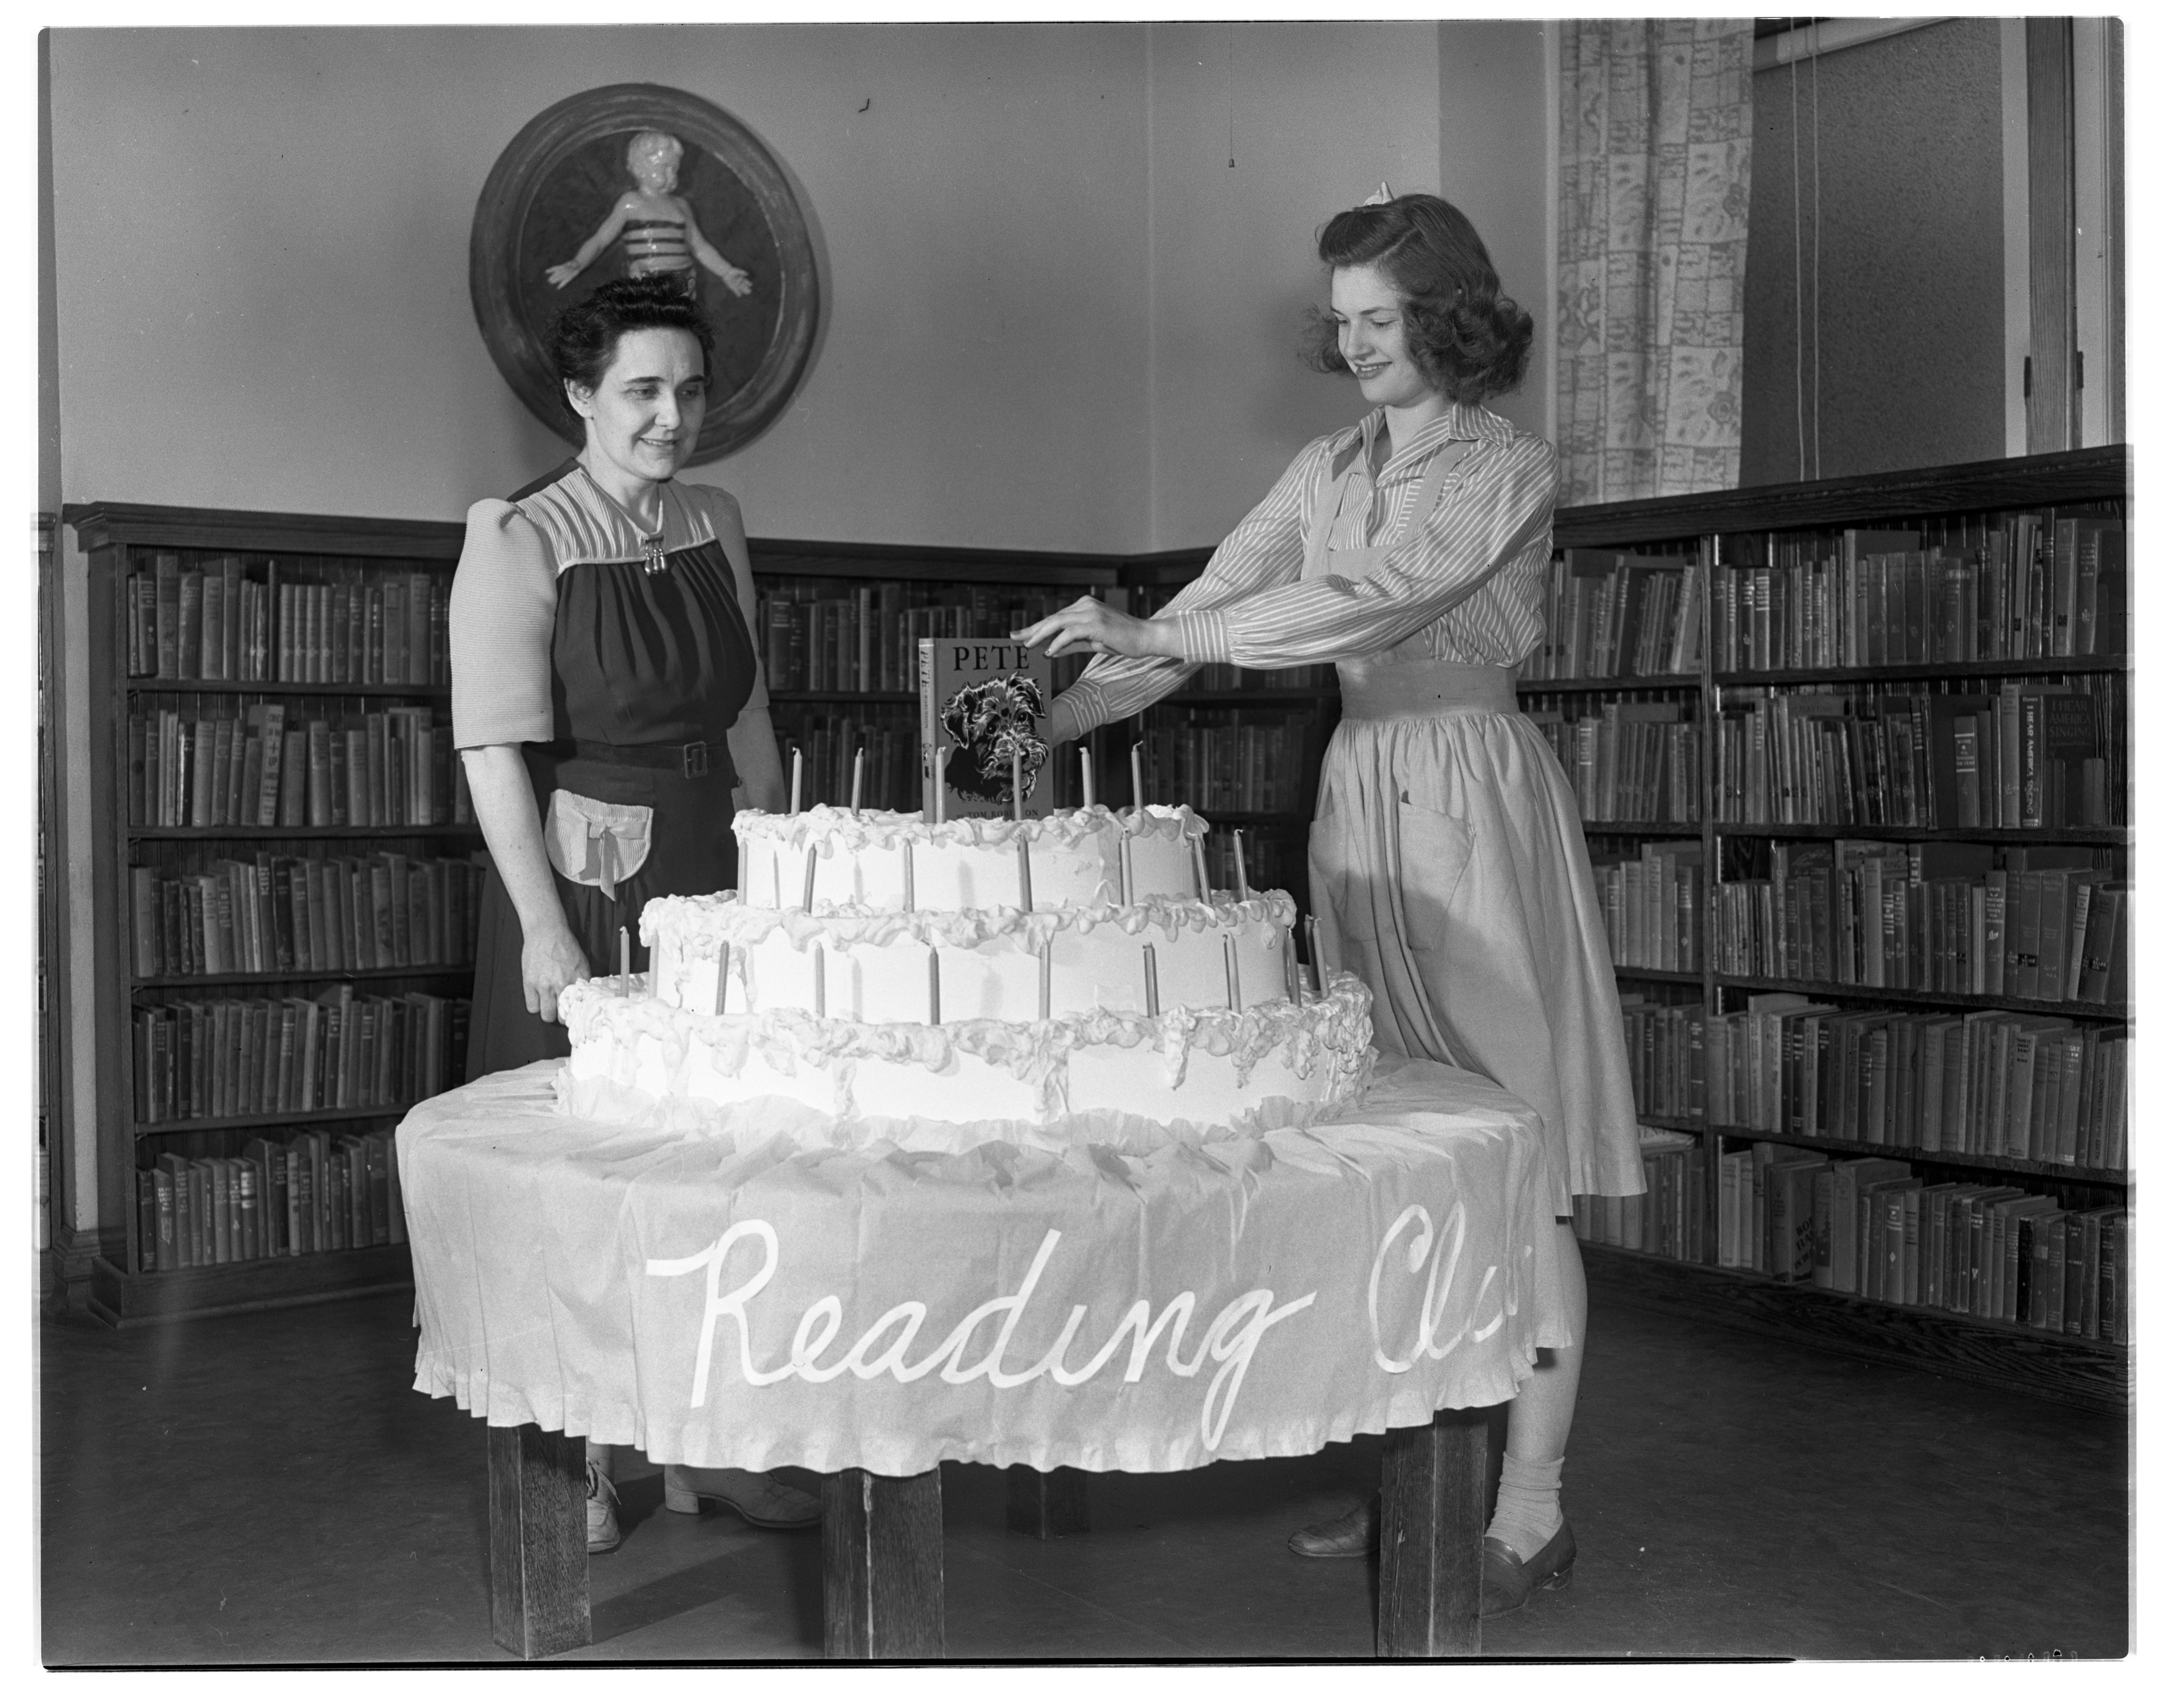 Hazel Keedle & Joan Gallup With Summer Vacation Reading Club Birthday Cake, Ann Arbor Public Library, June 1941 image